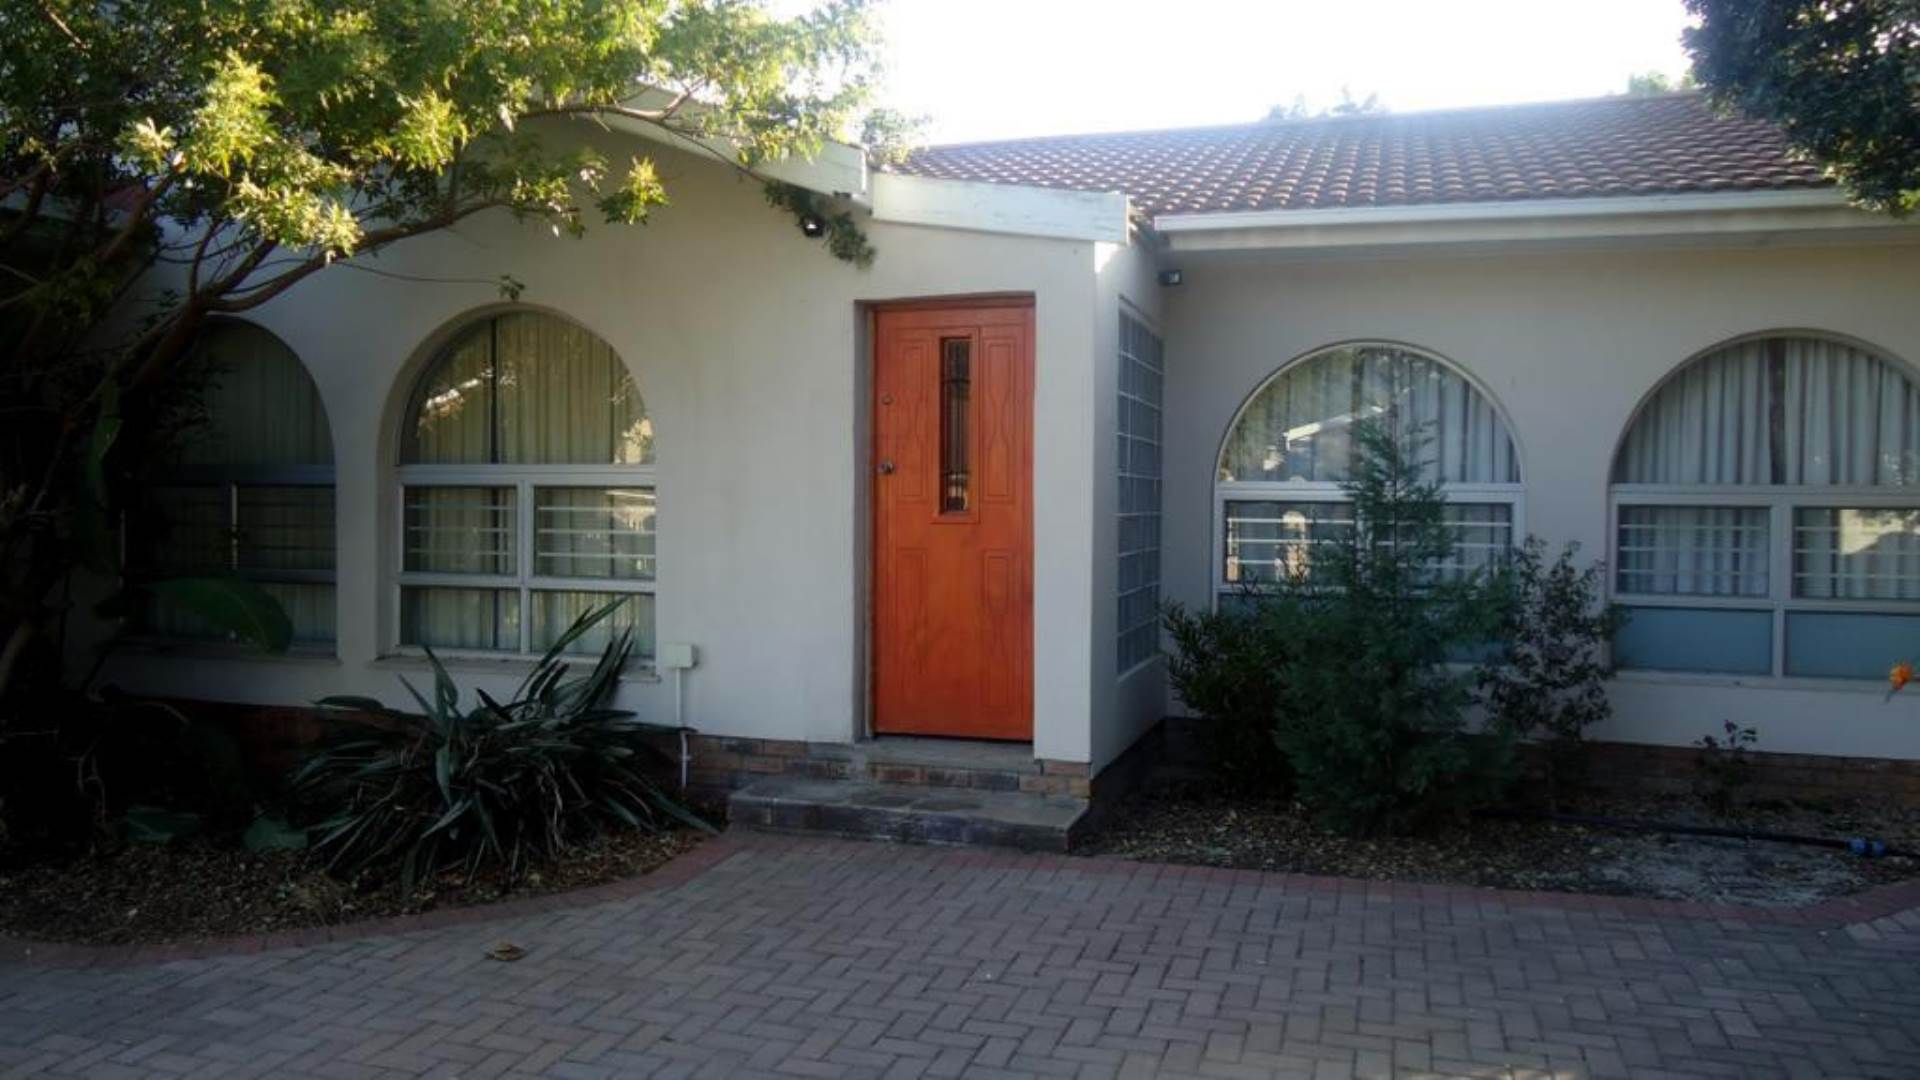 3 BedroomHouse For Sale In Ferndale